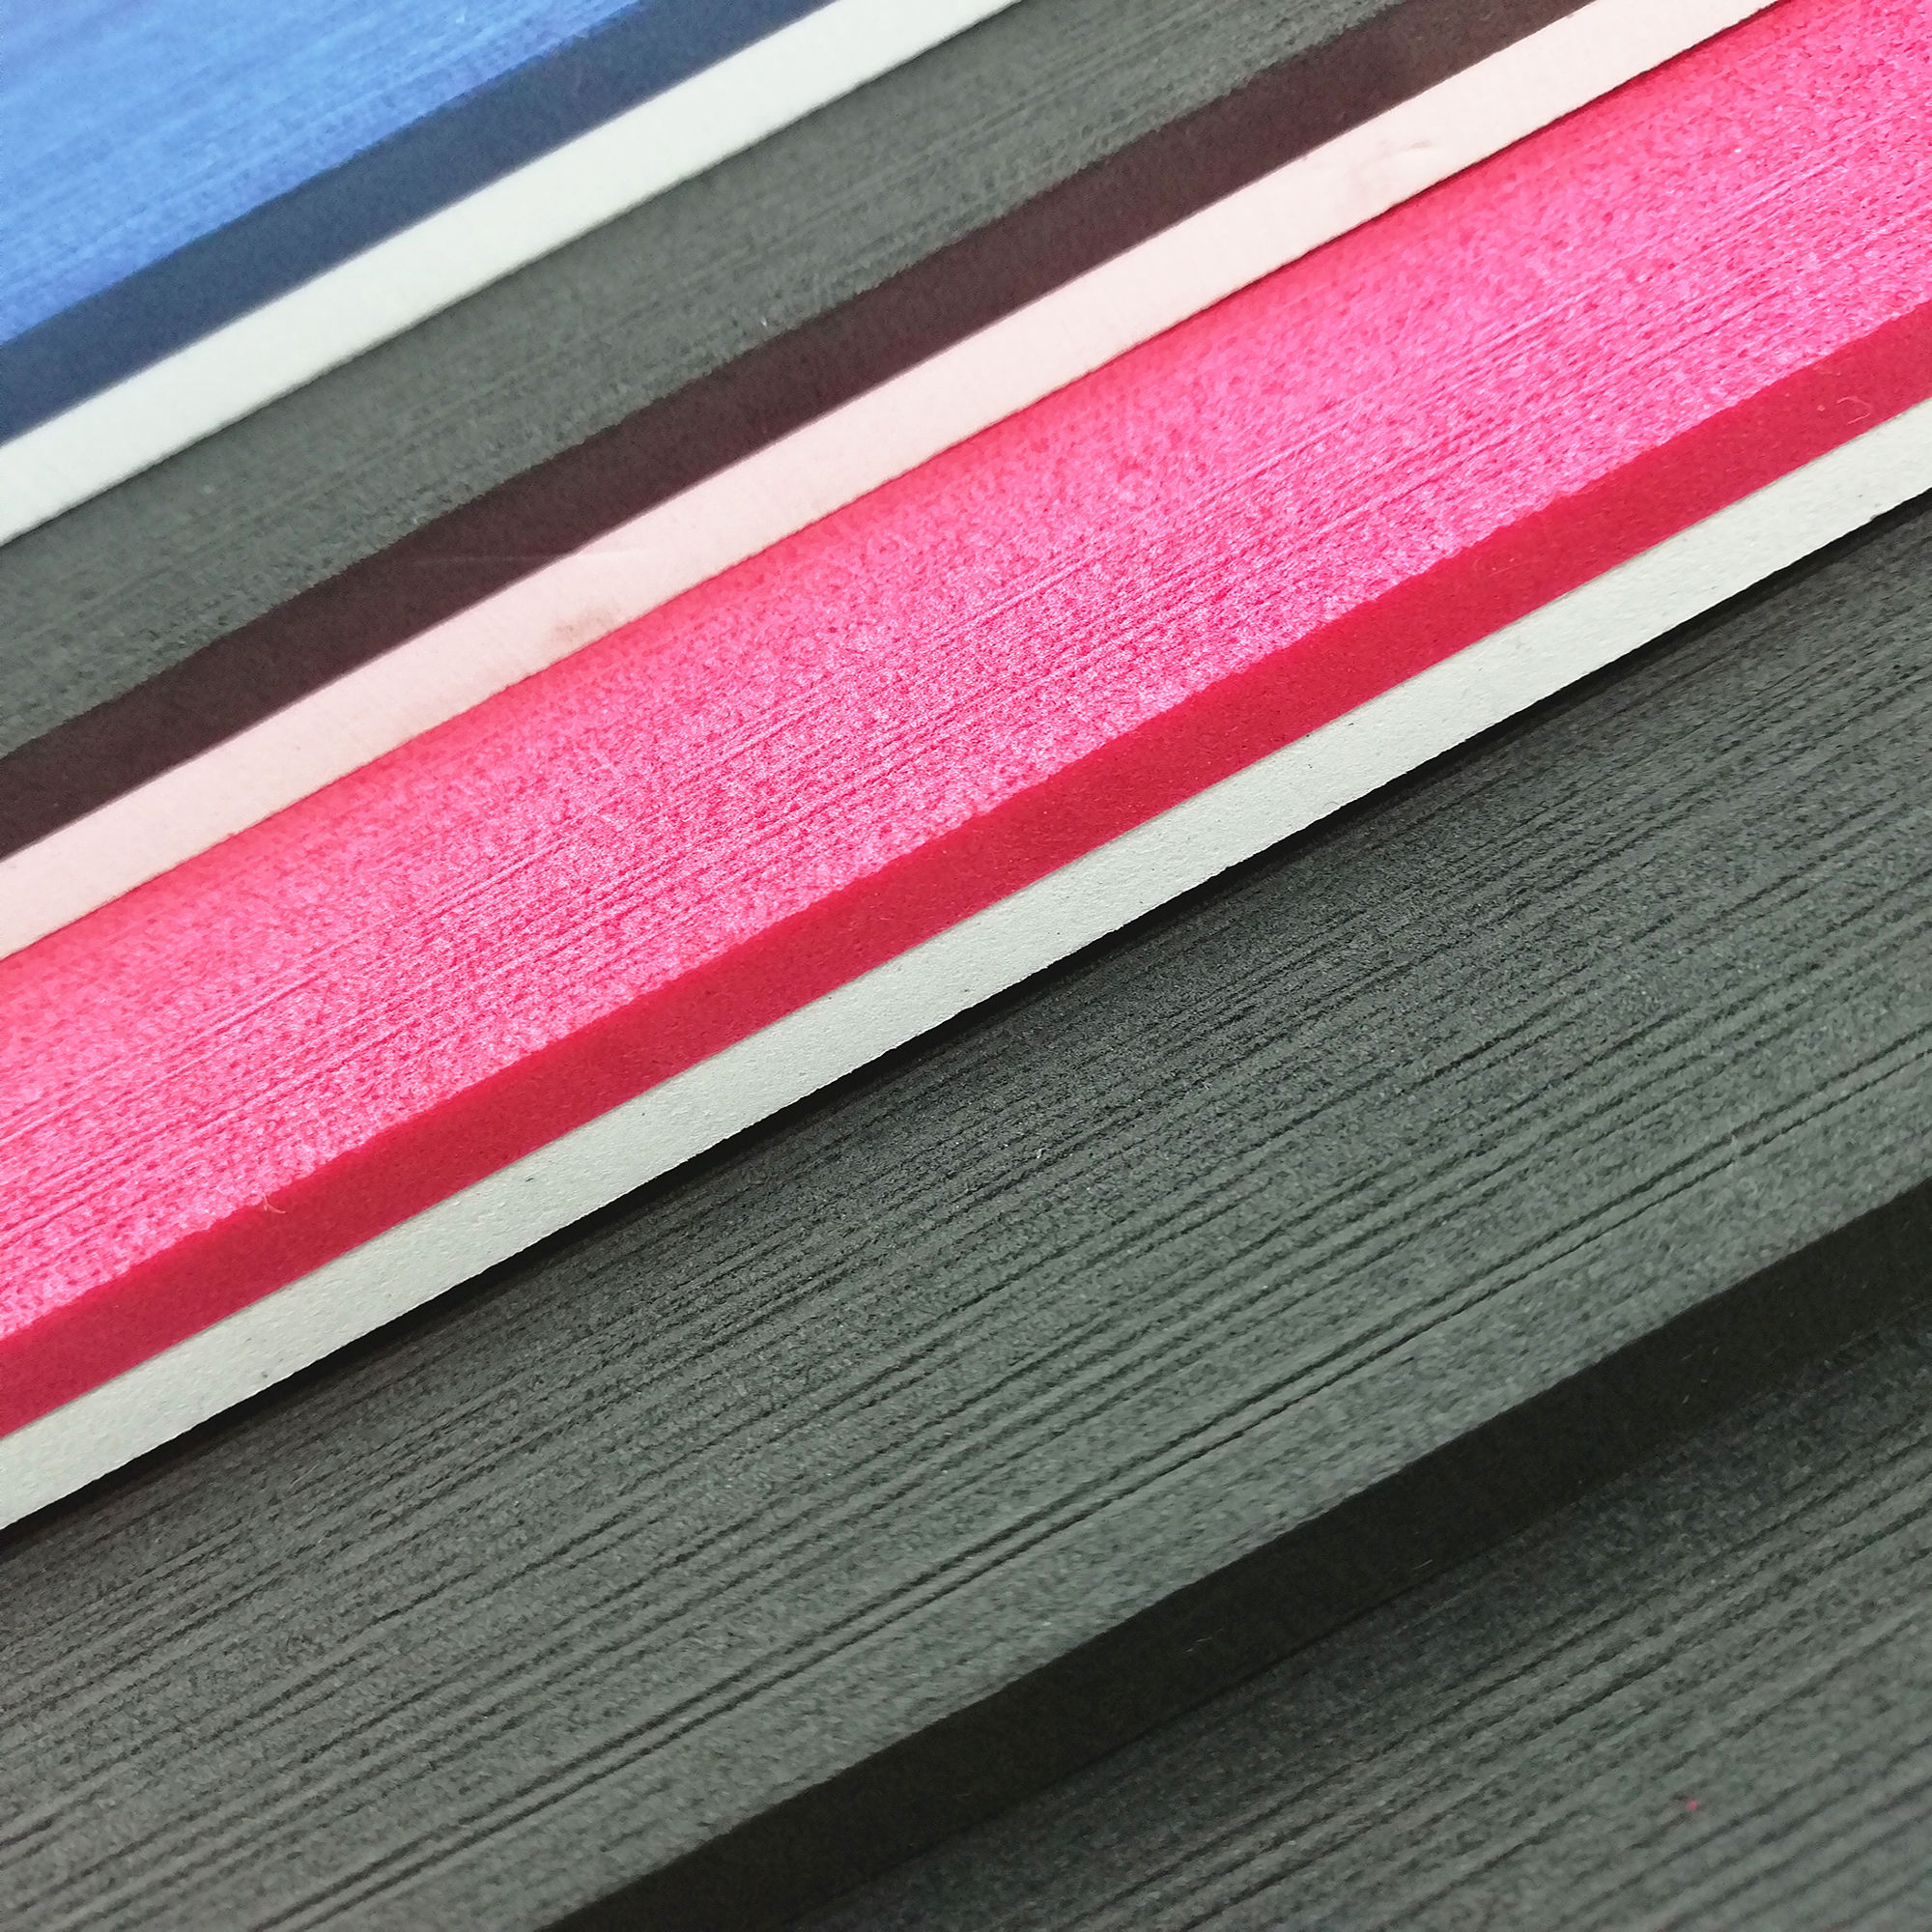 Rough surface 2 layer or 3 layer colorful EVA rubber foam sheet material for making hotel slipper, flip flop, and sandals